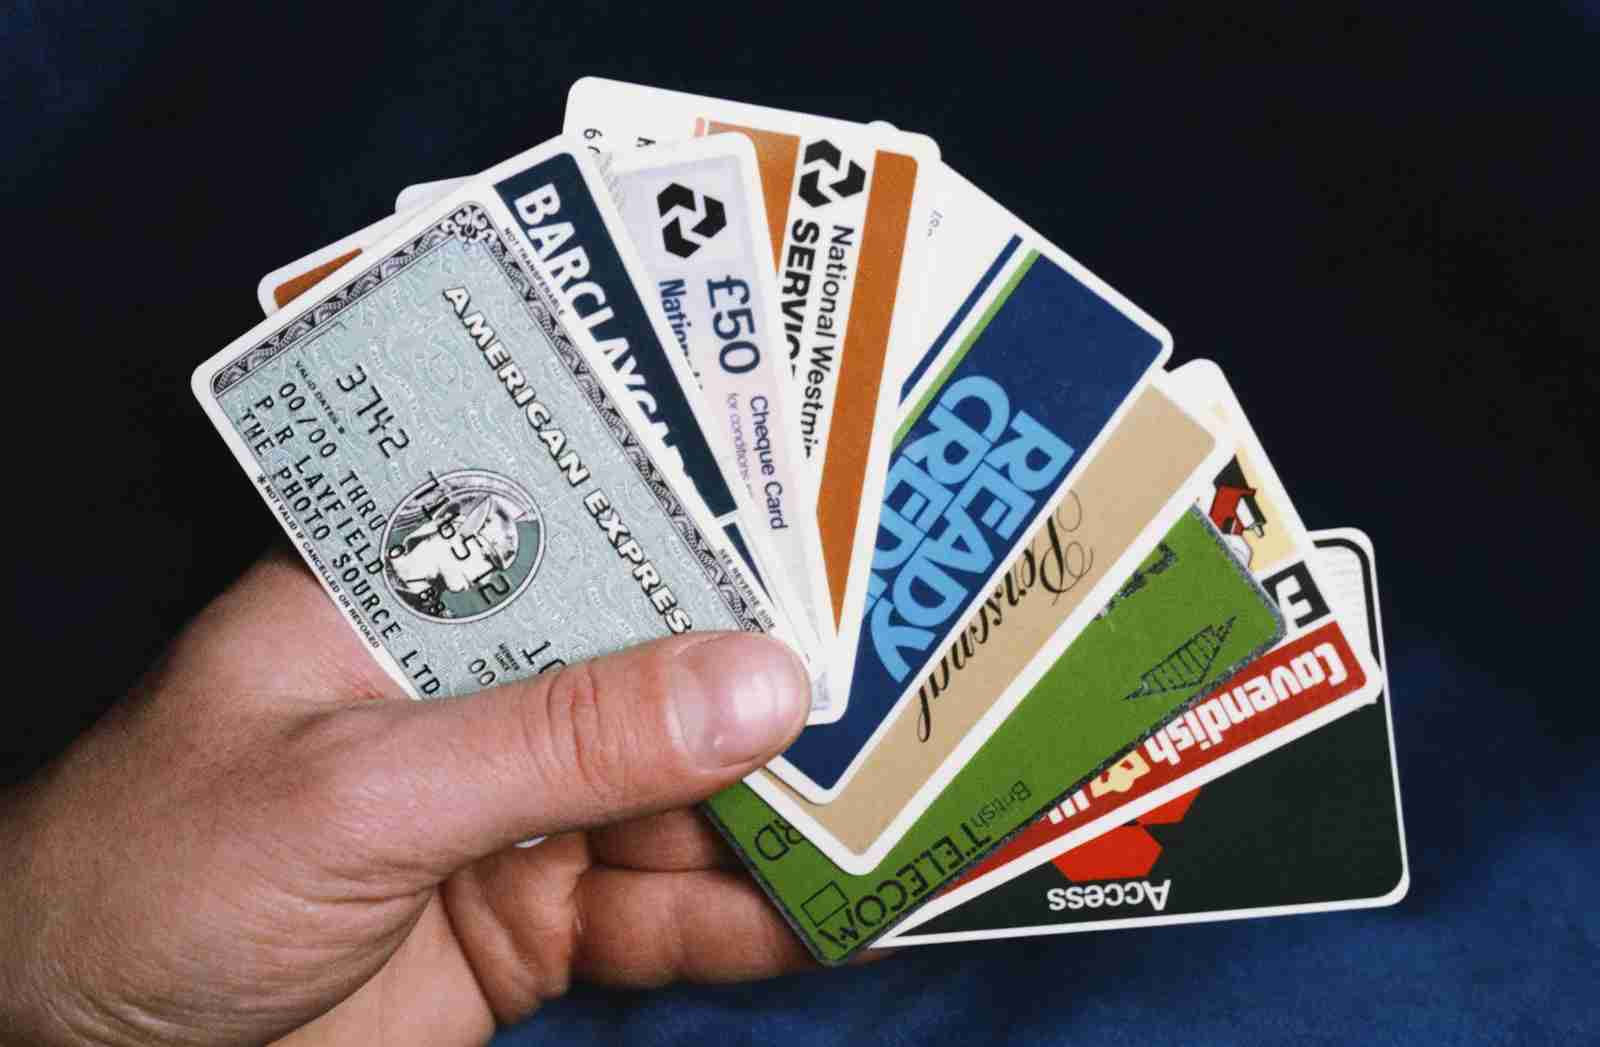 A selection of credit and bank cards, along with a green British Telecom phone card in 1986. (Photo by Fox Photos / Hulton Archive / Getty Images)